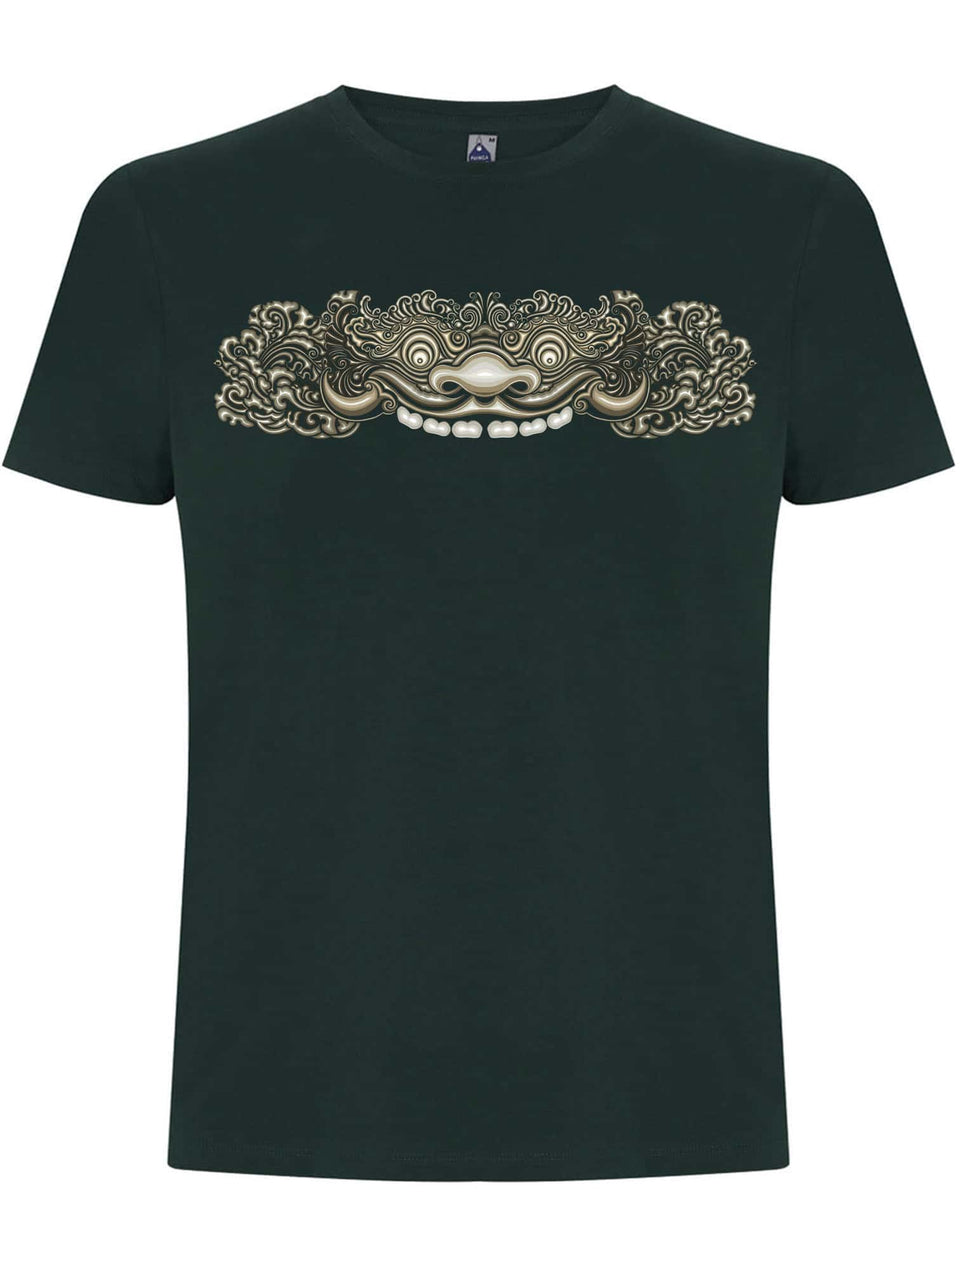 Bhoma Made To Order Men T-Shirt - Bottle Green